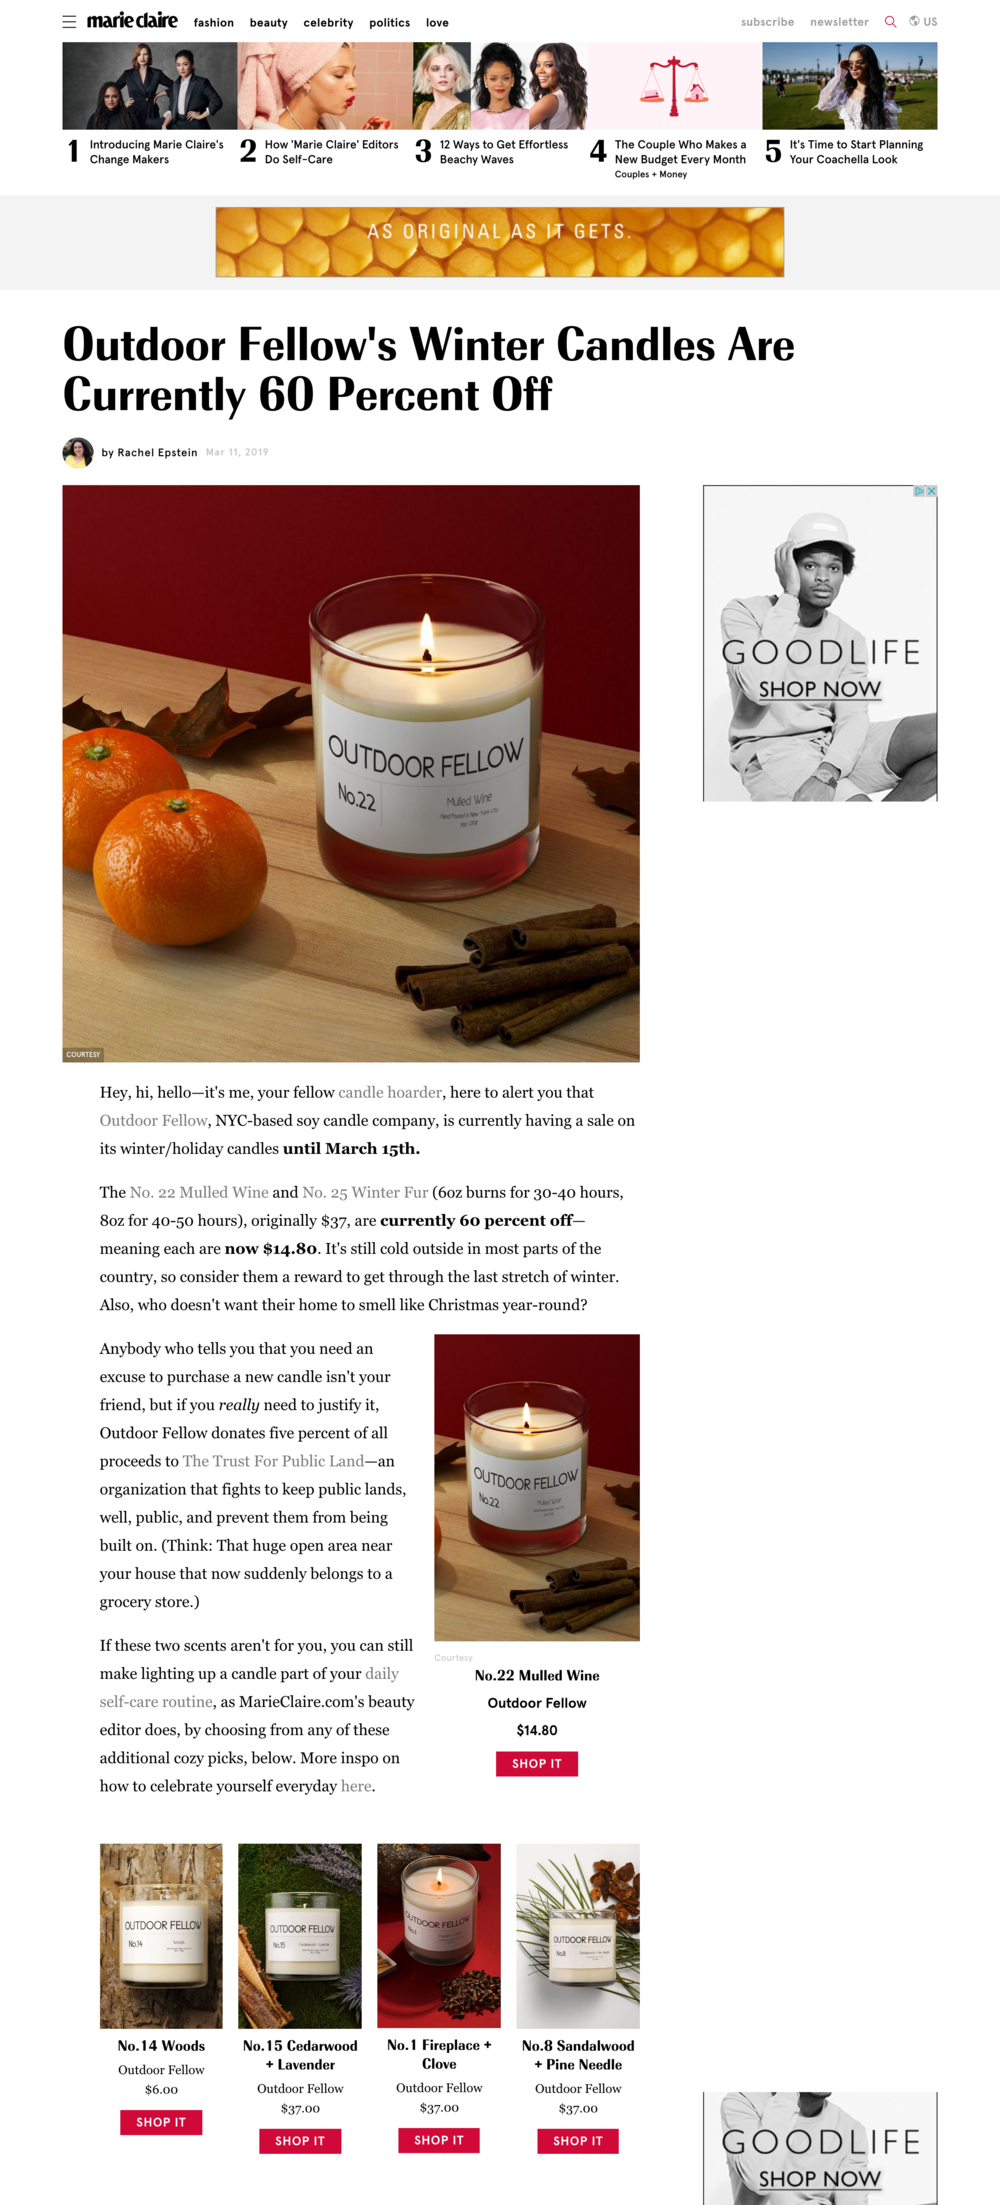 Marie Claire.com - Outdoor Fellow - 3-11-19.png